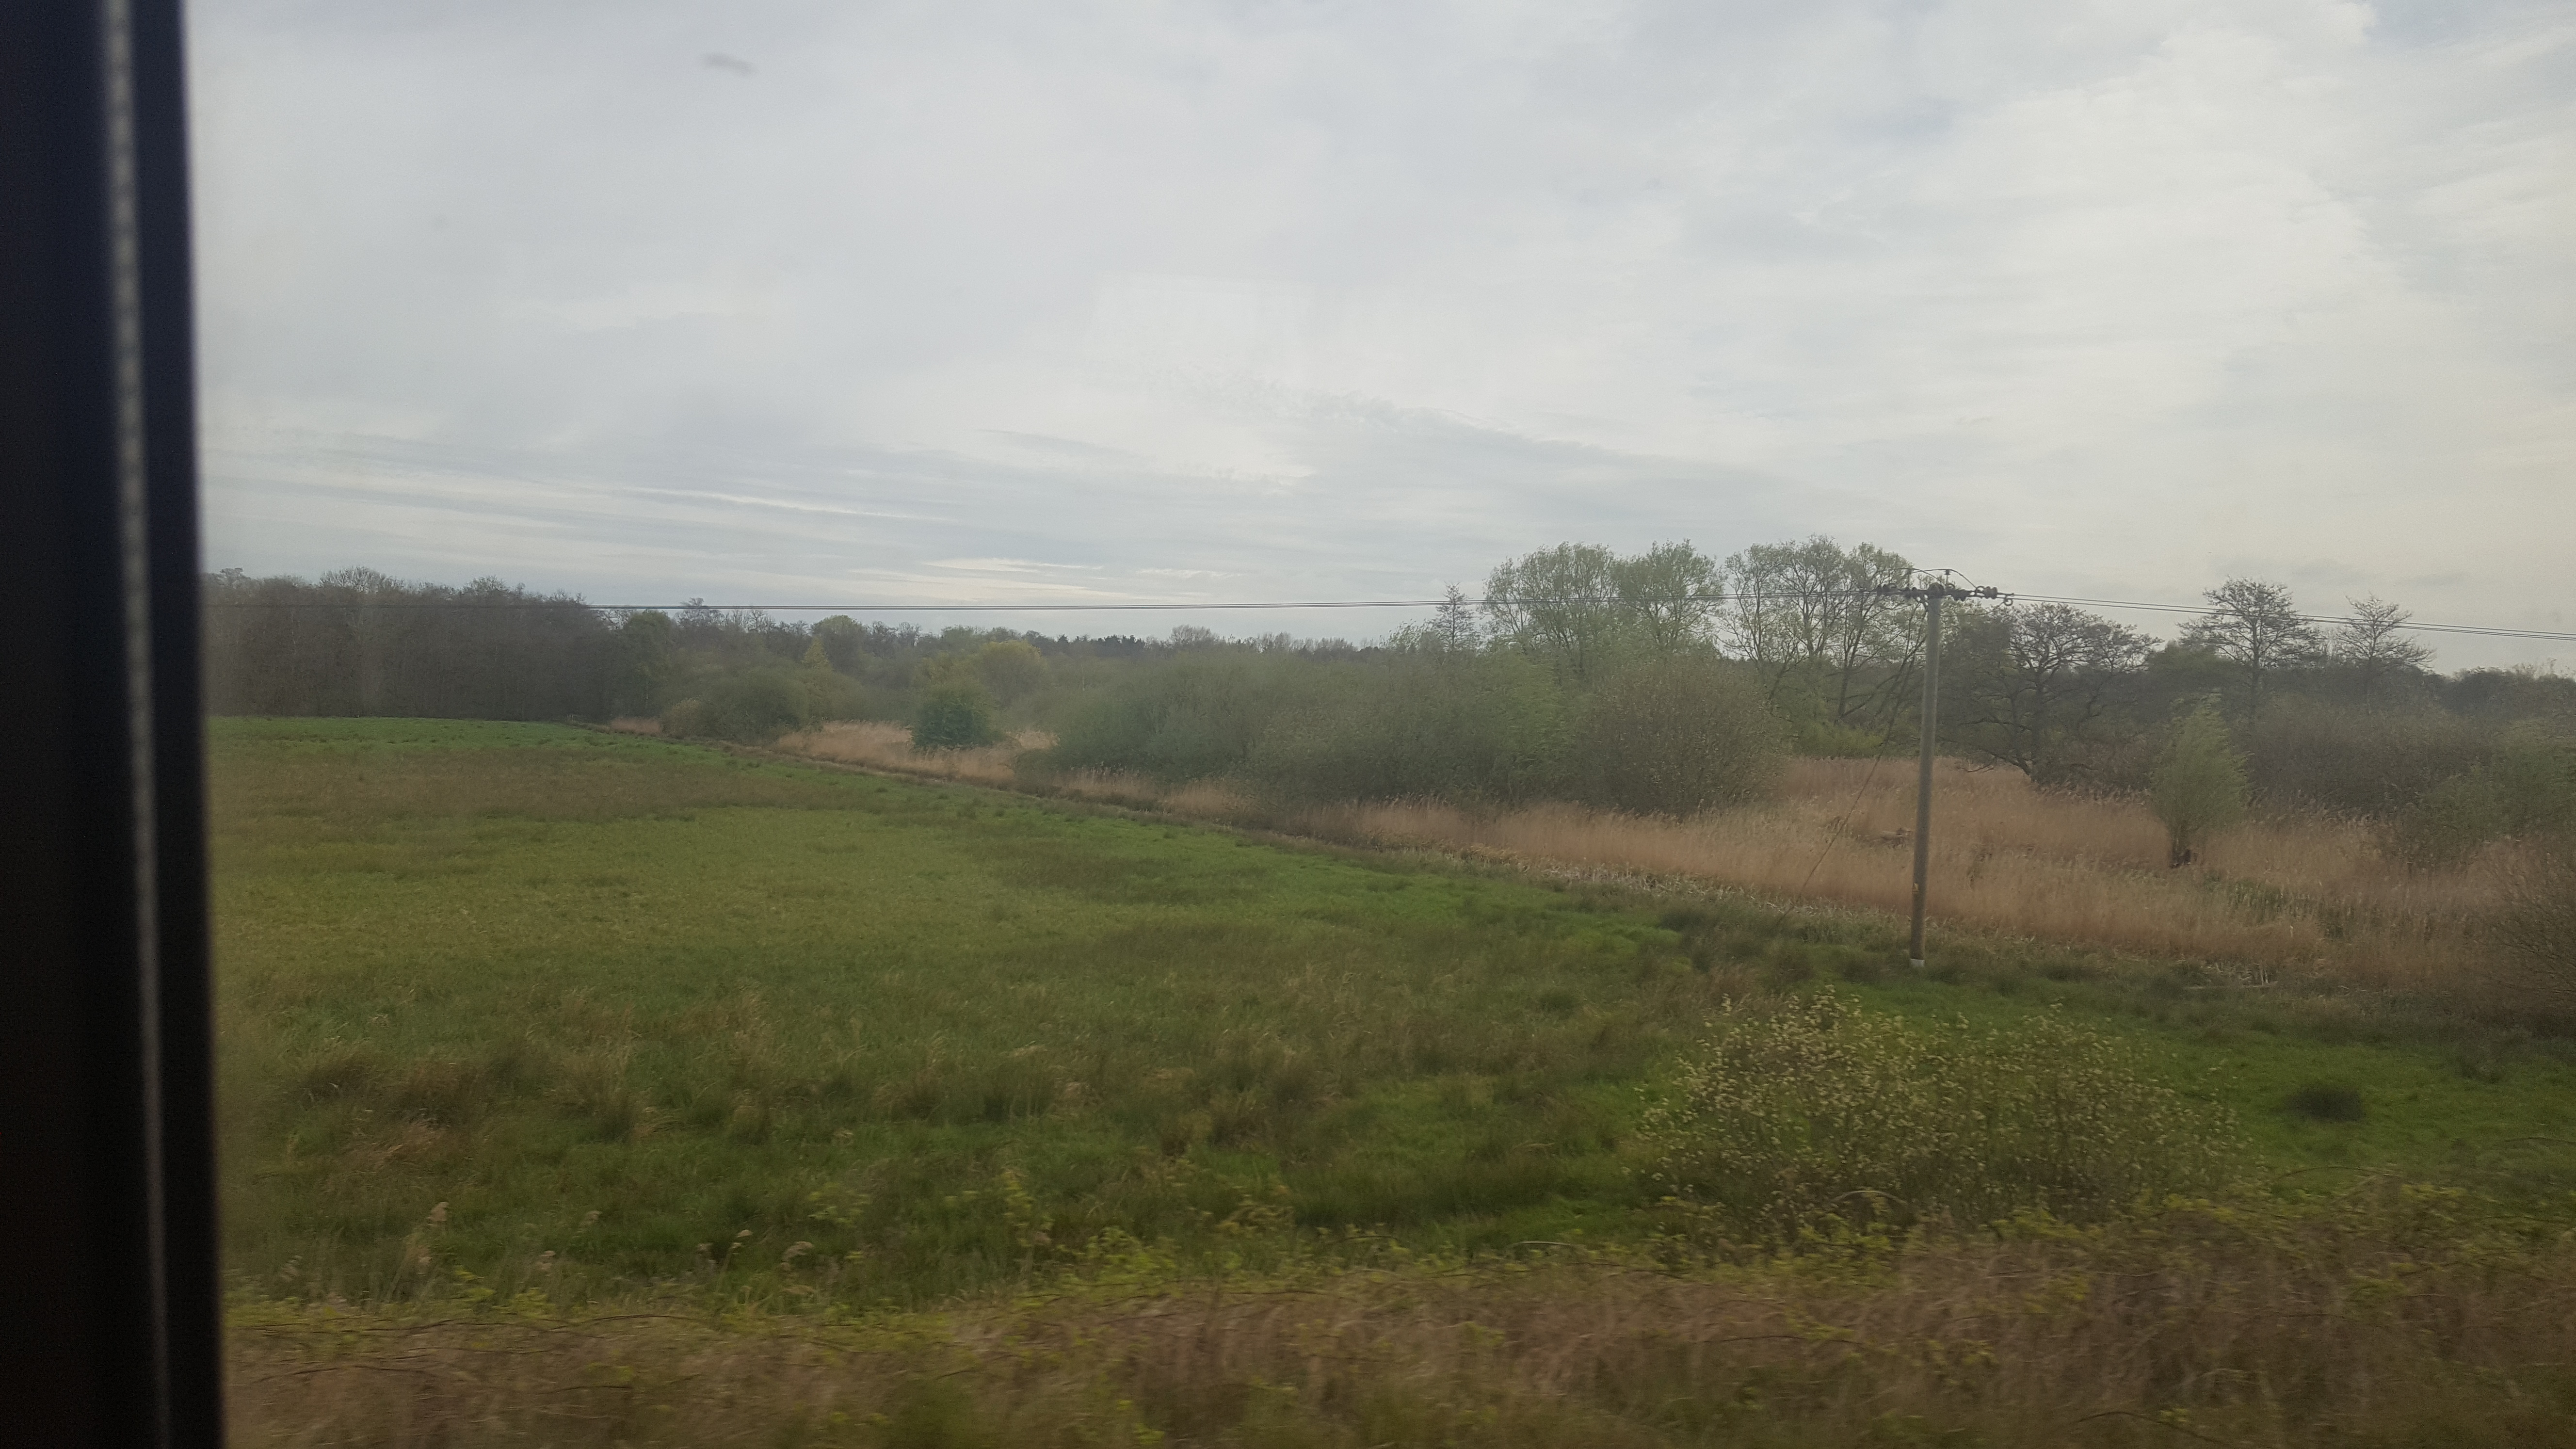 View aboard the Greater Anglia train from Norwich to Great Yarmouth